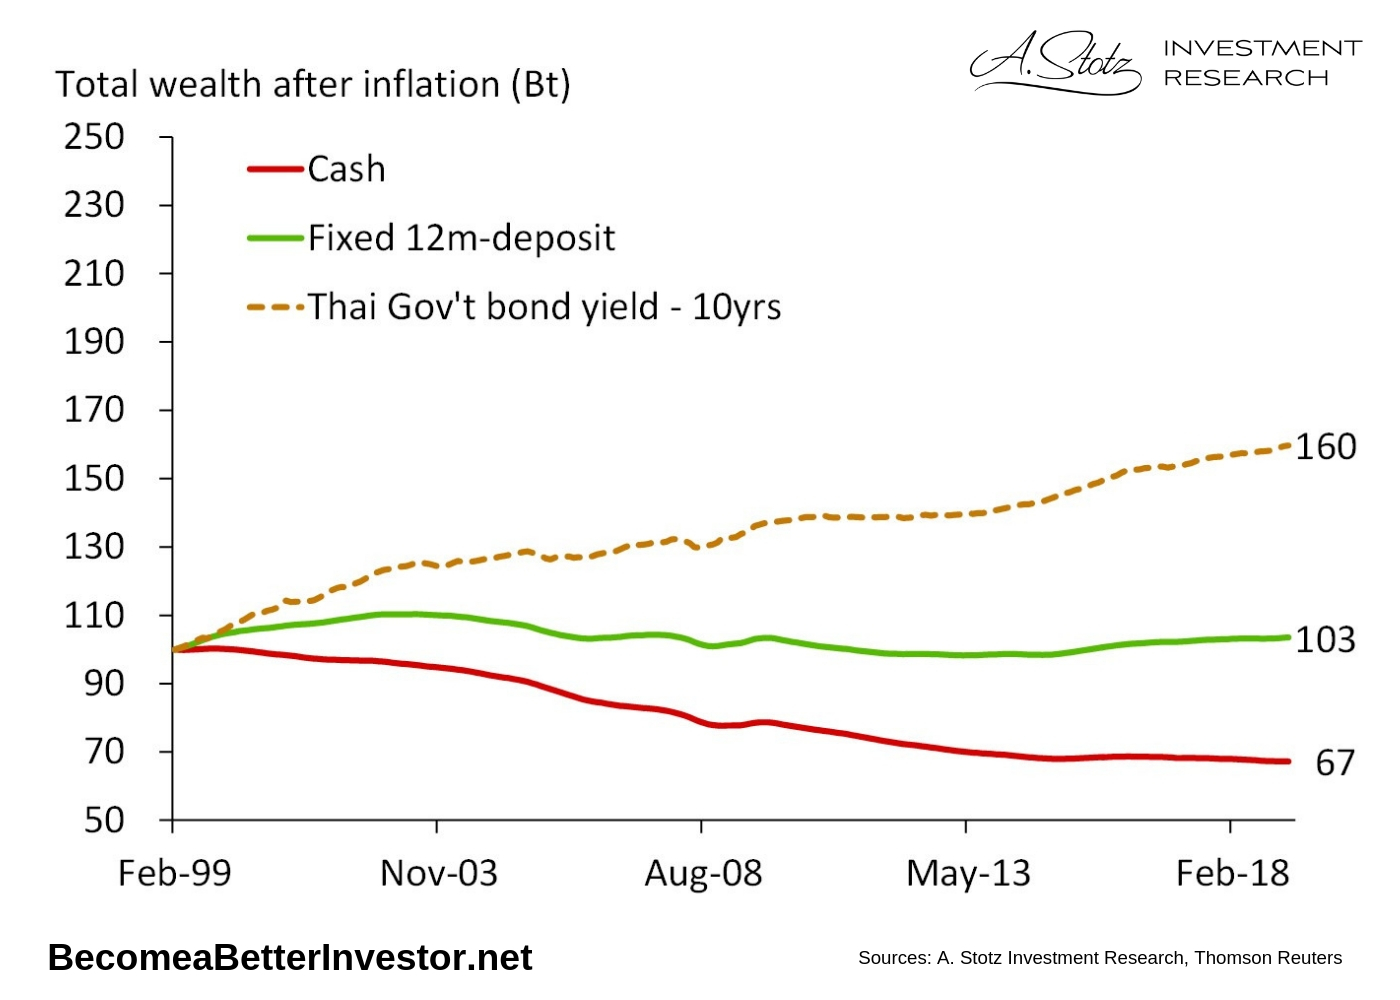 While cash may feel safe, as the value doesn't move up or down all the time, due to inflation, you're losing in real terms.